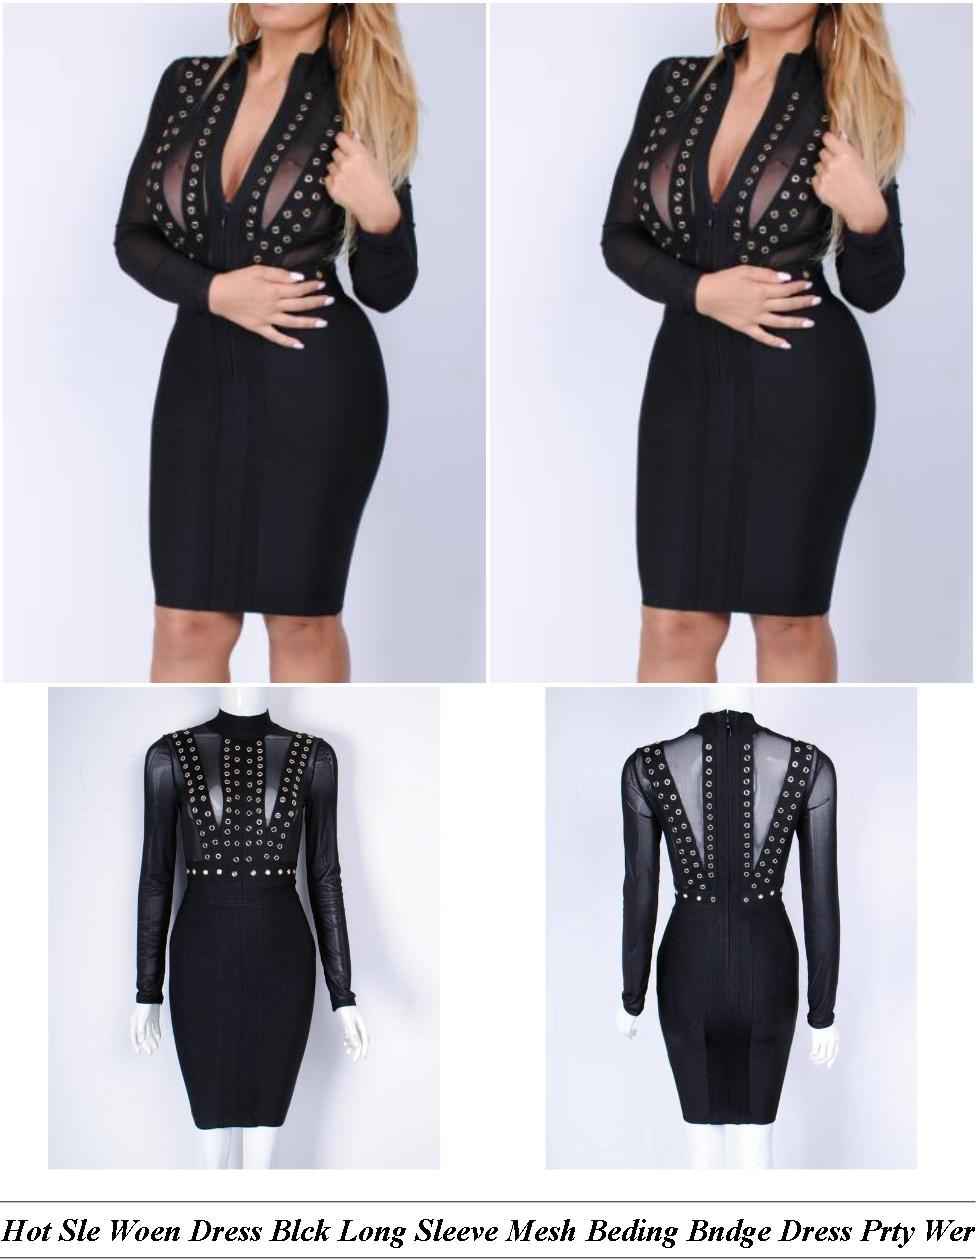 Occasion Dresses - Dresses For Sale Online - Sexy Dress - Cheap Fashion Clothes